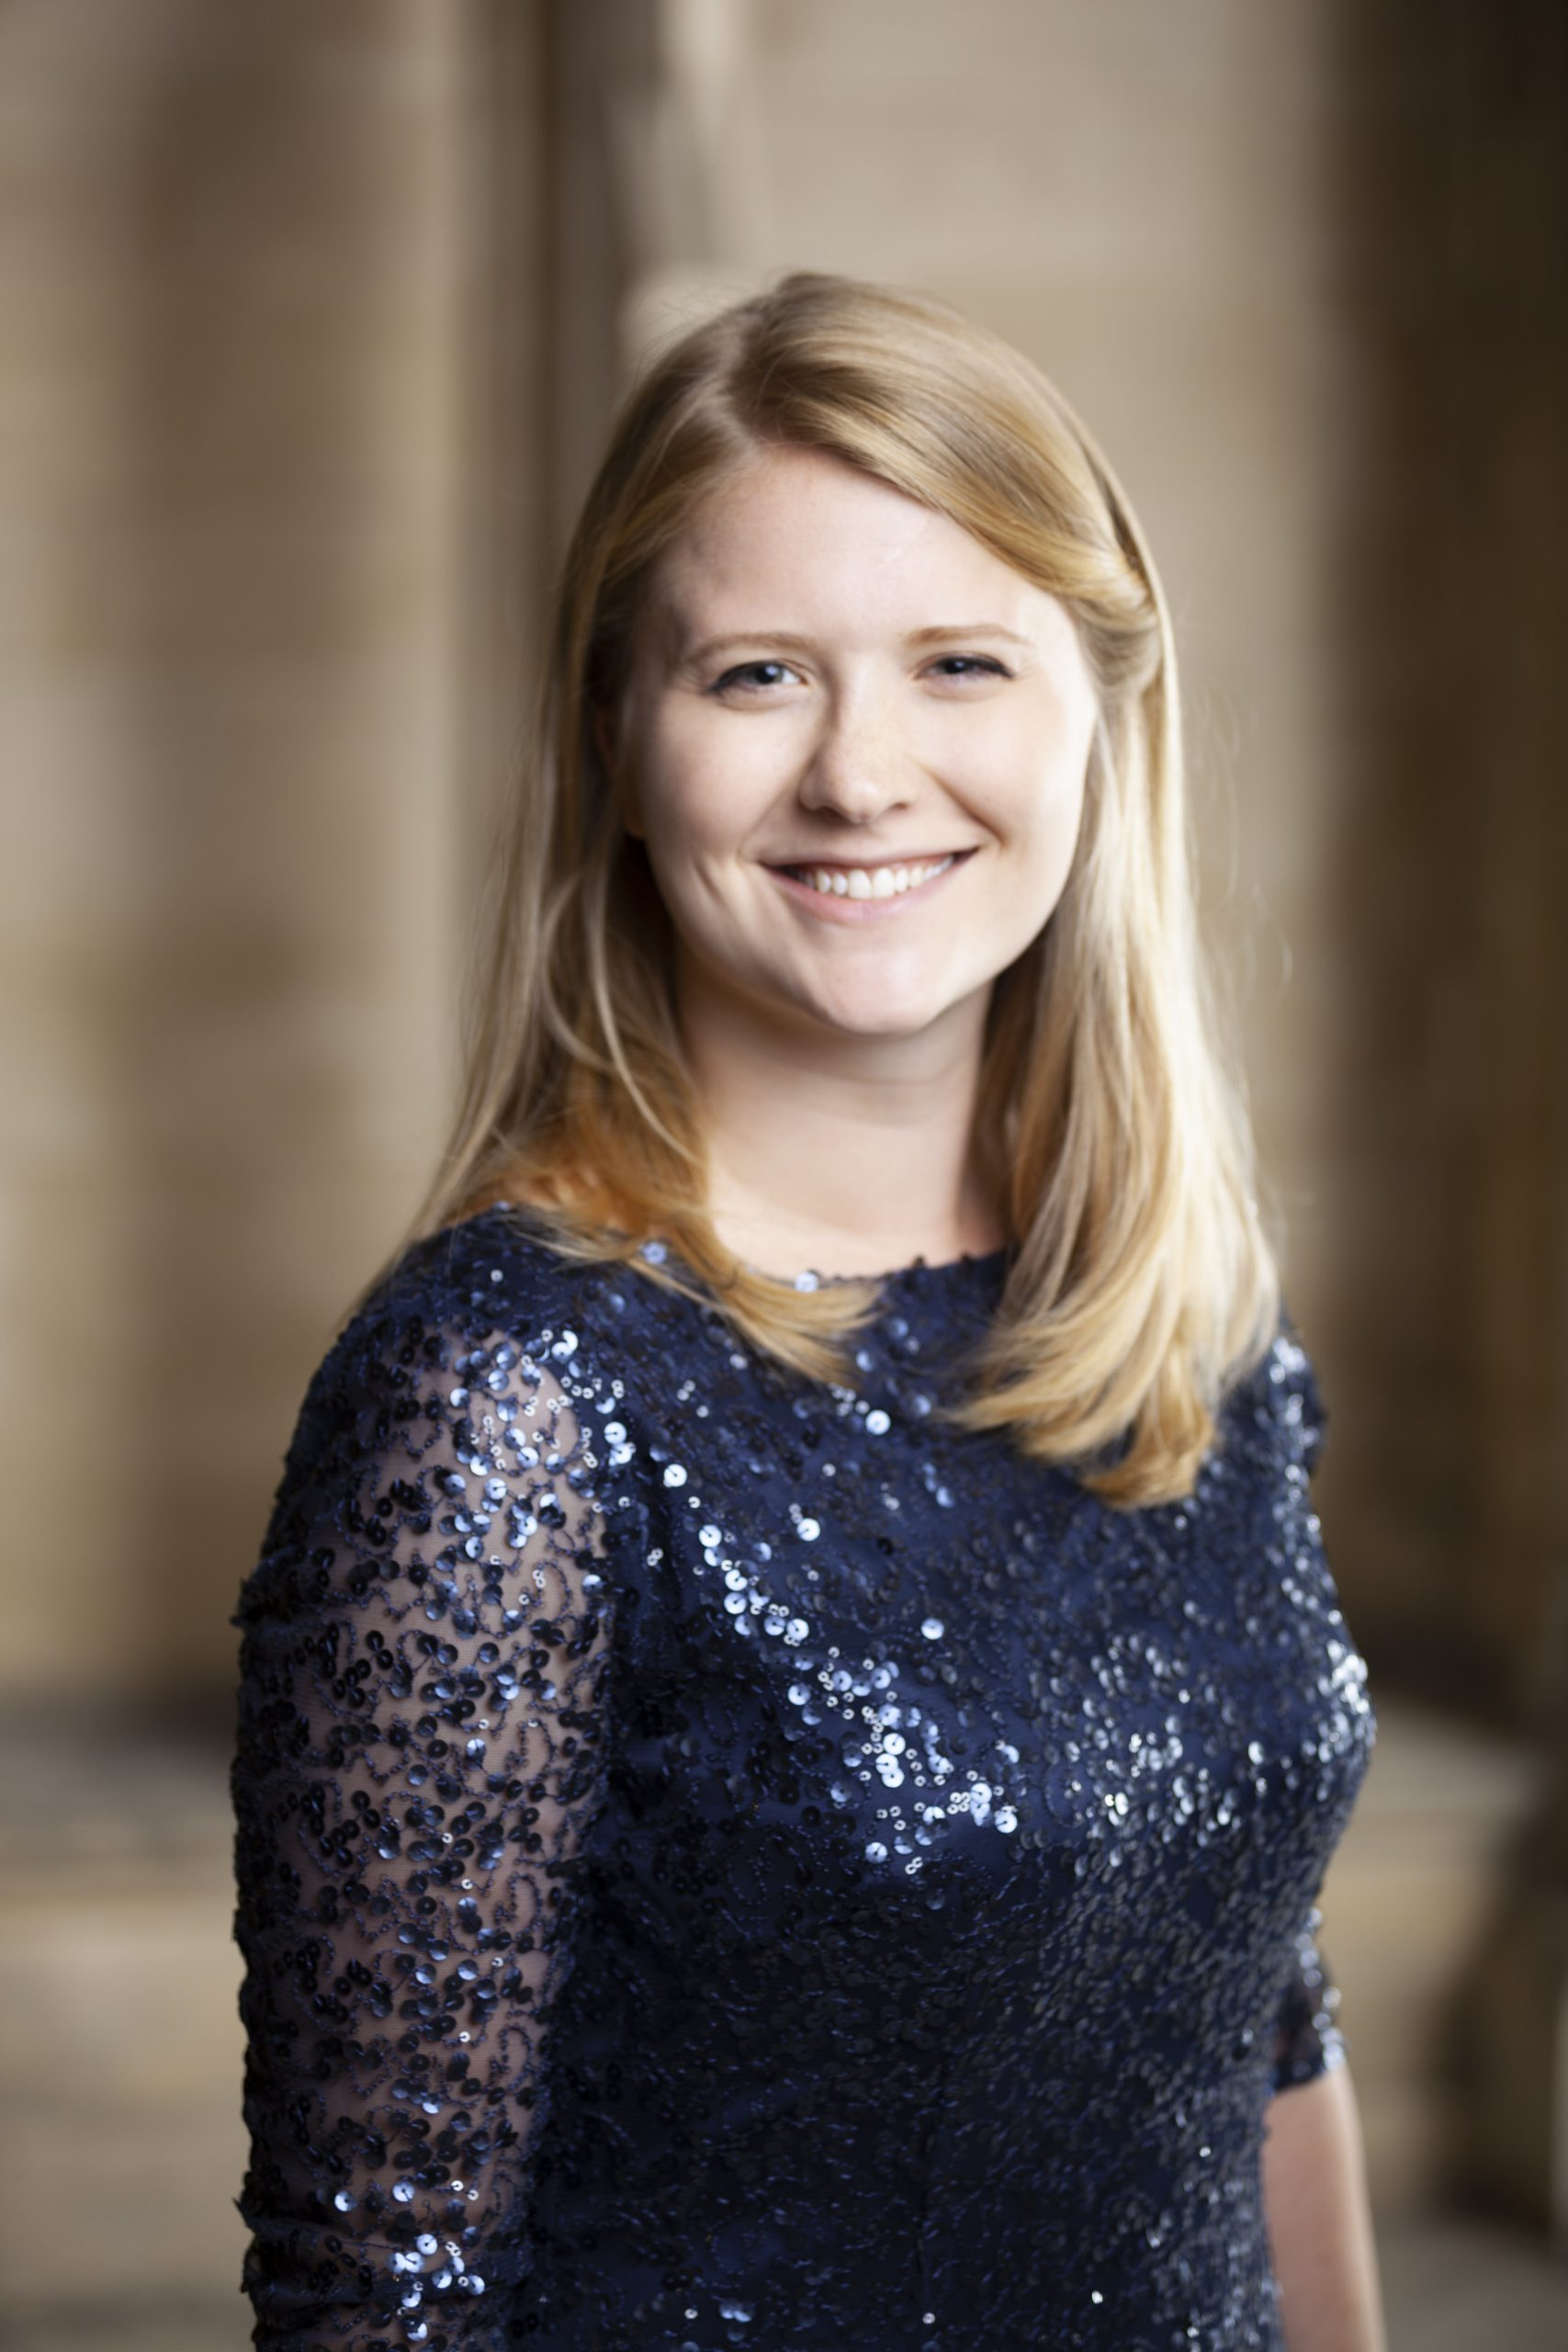 Sam Cobb, smiling at the camera, wearing a deep blue sparkly dress. Photo background: out of focus cloisters of New College.